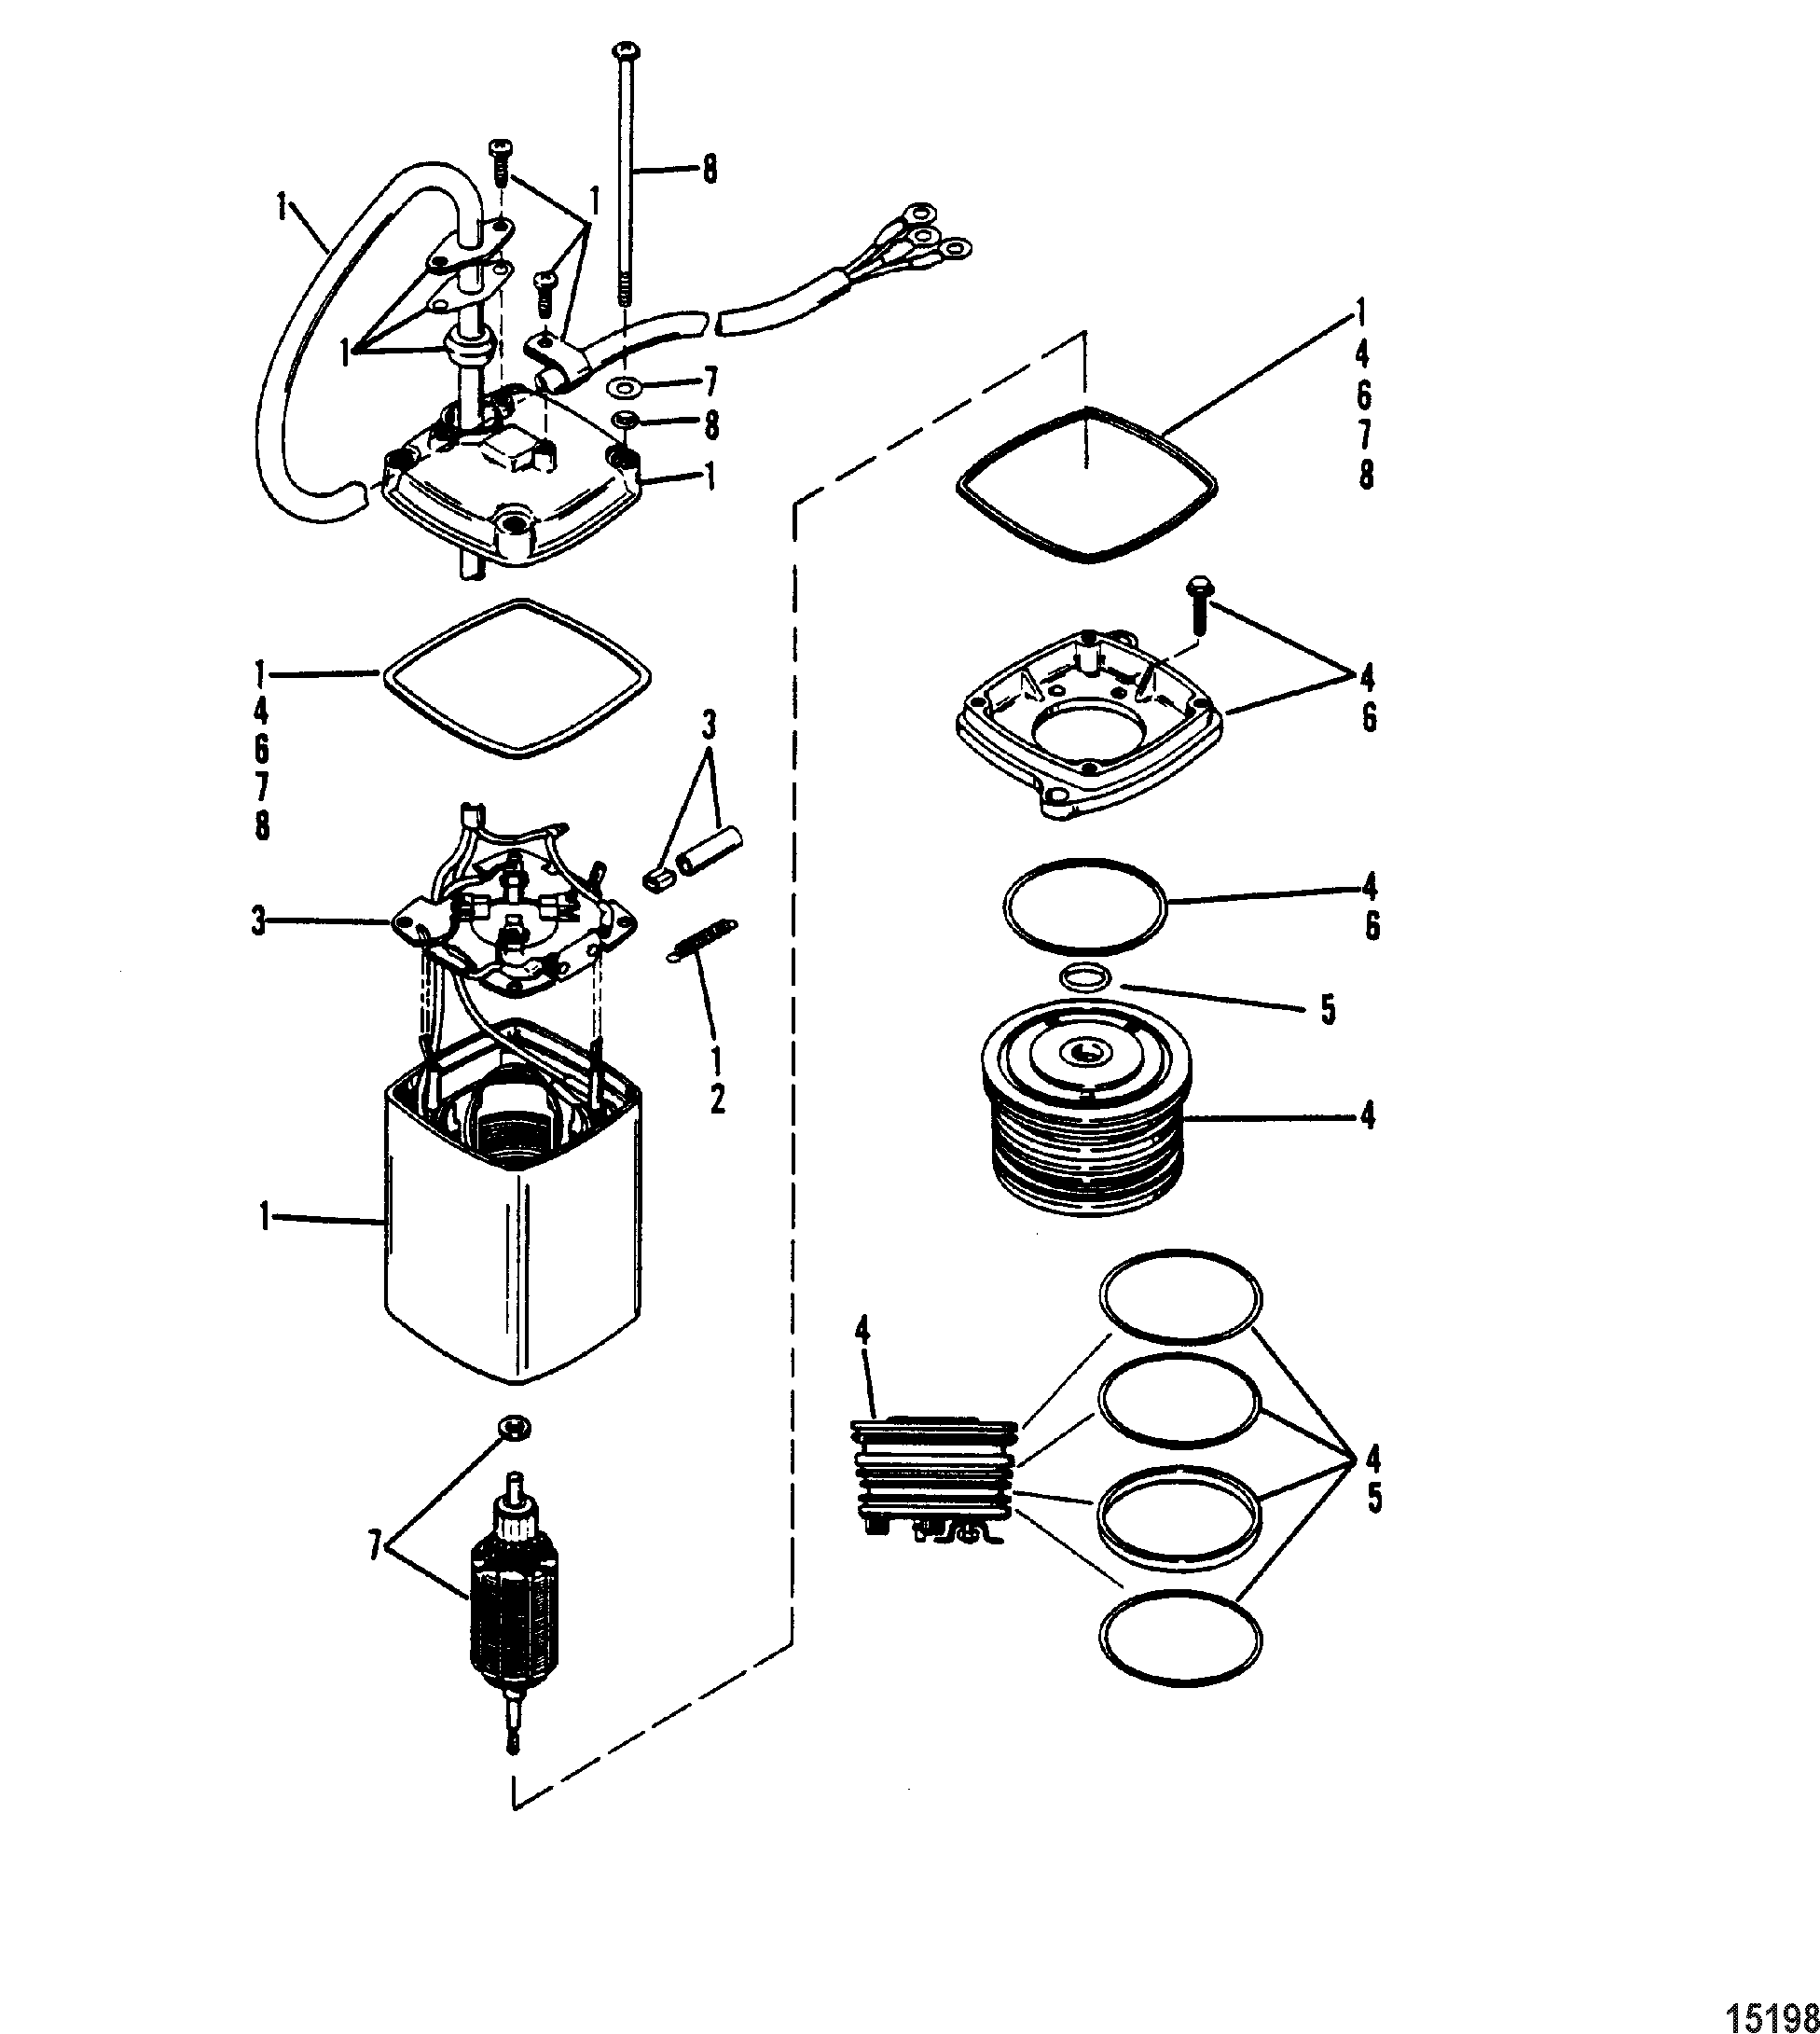 mercury 500 outboard wiring diagram gandul 45 77 79 119 Mercury Outboard Control Wiring Diagram mercury 402 outboard wiring diagram